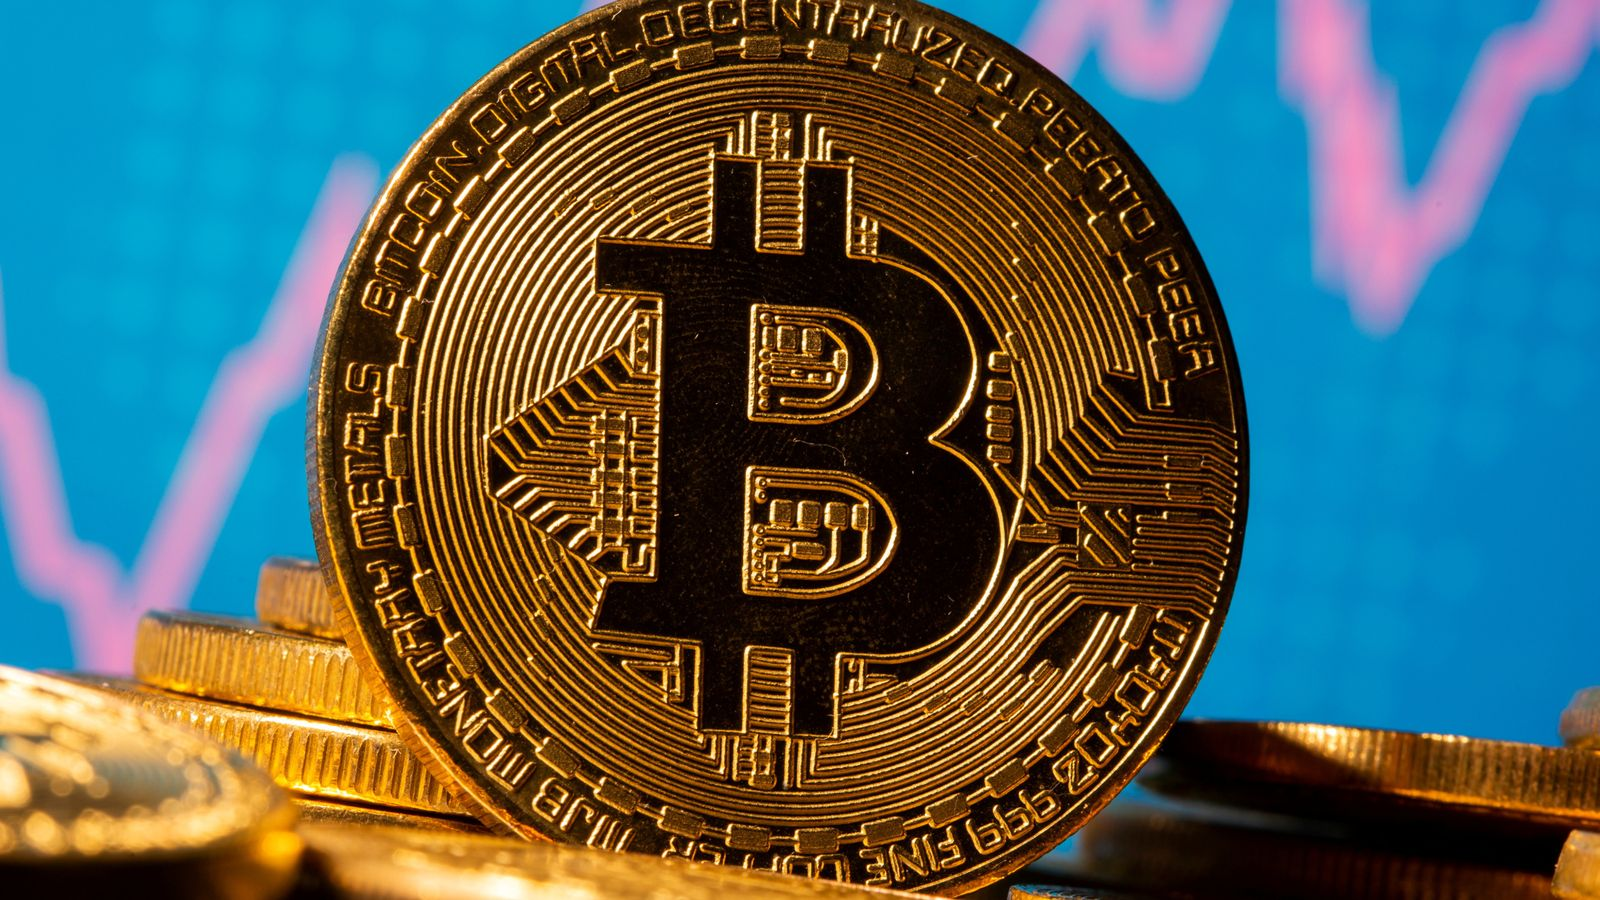 Bitcoin extends rally to top $30,000 for first time | Business News